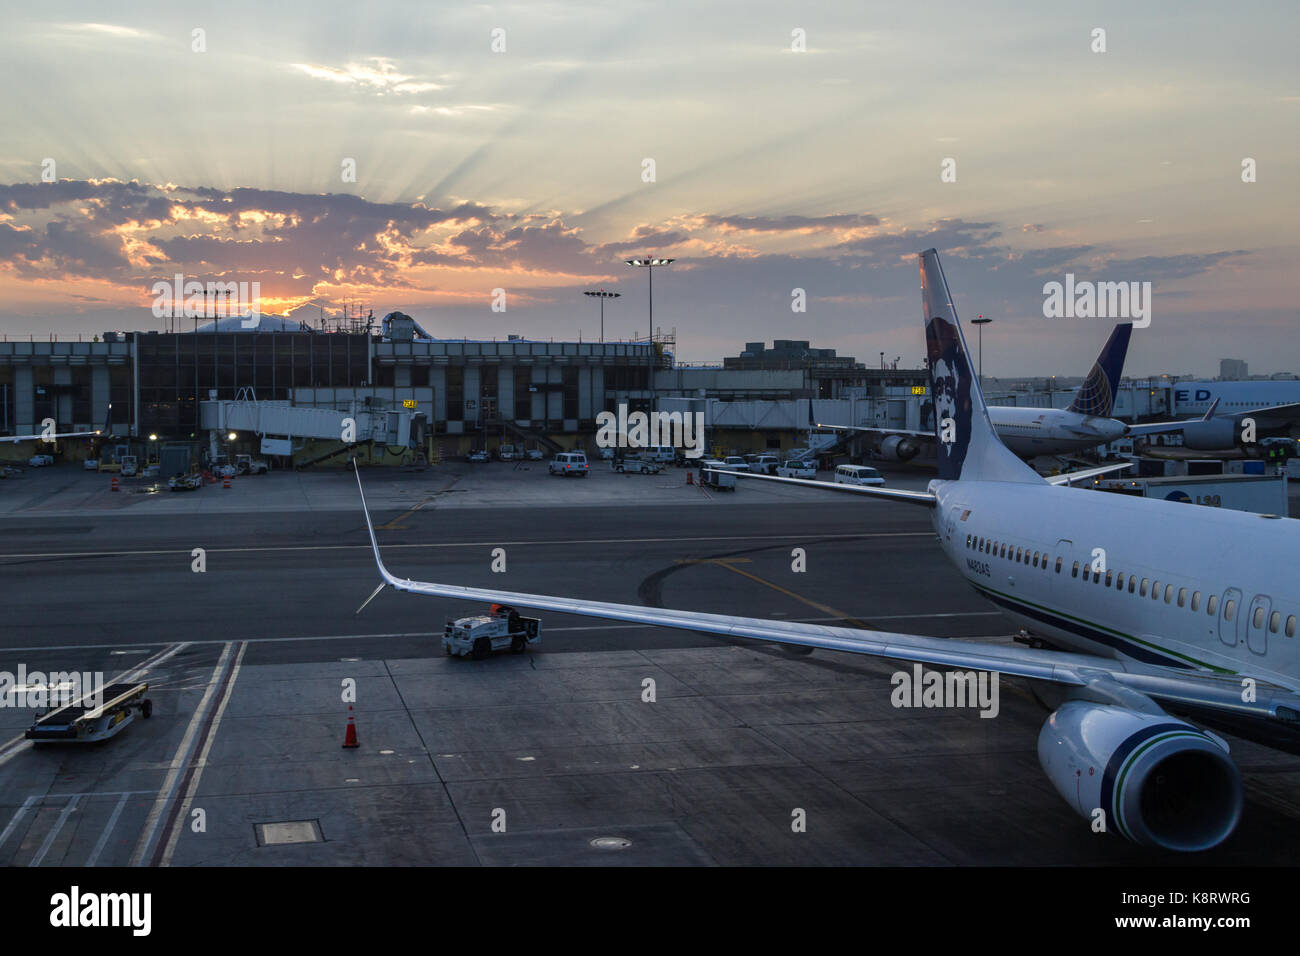 Alaska airlines stock photos alaska airlines stock images alamy seattle washington september 06 beautiful sunrise in viewed from the alaska airlines wing buycottarizona Choice Image